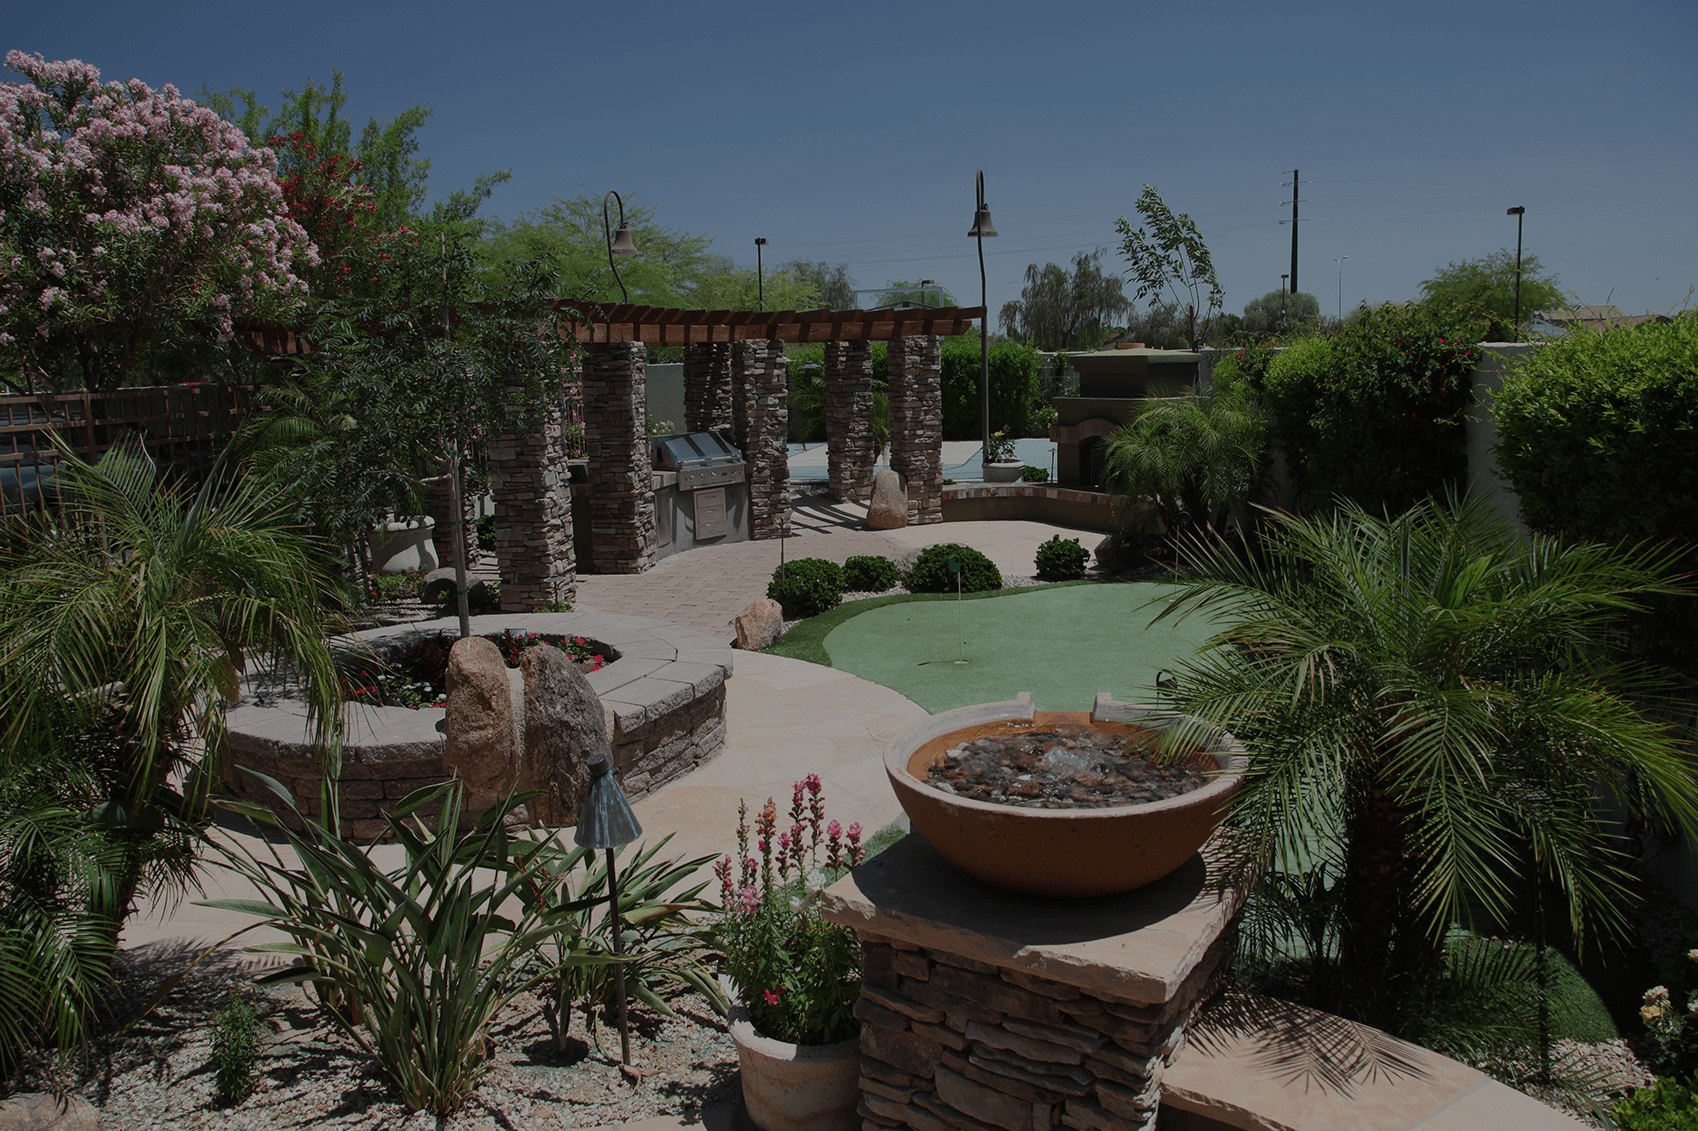 Residential Landscape Design U0026 Commercial Maintenance In Arizona - Valley View Landscaping